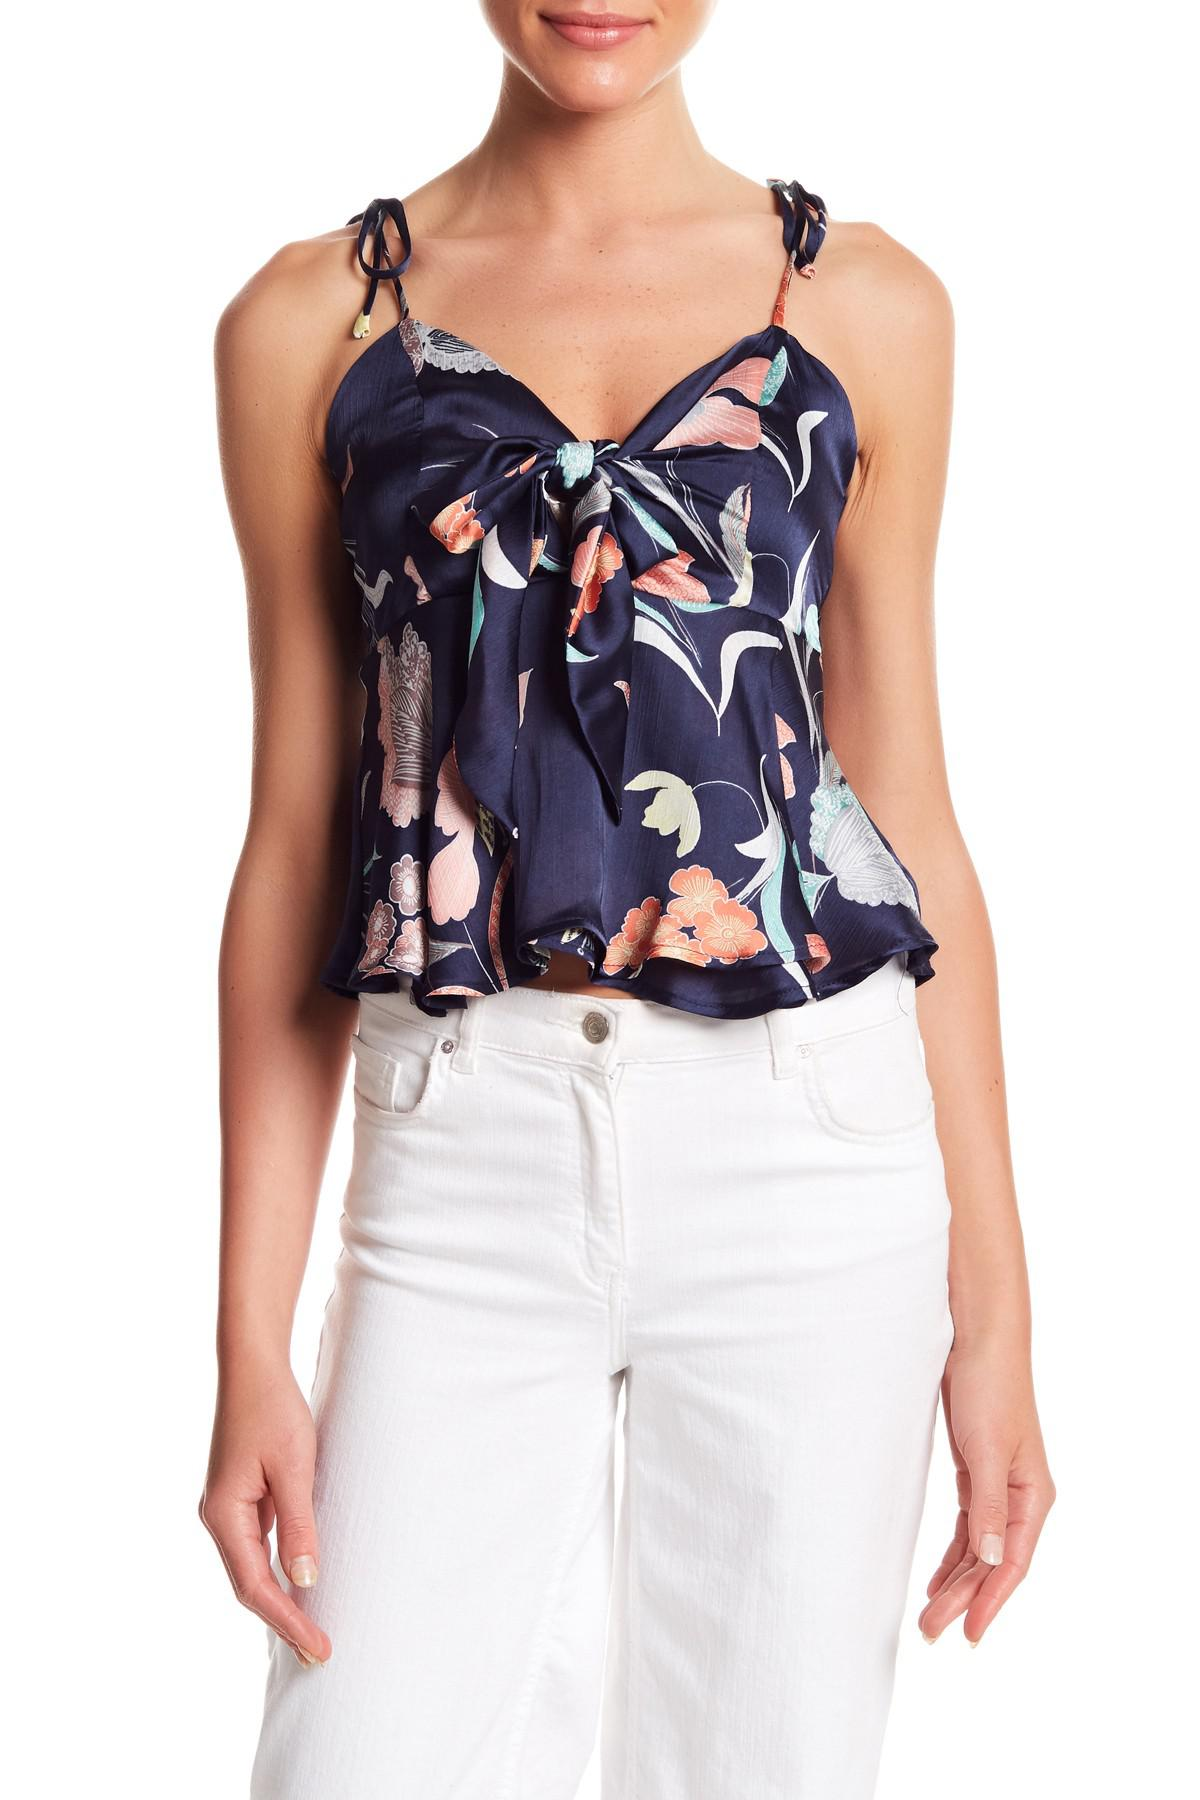 d08d1f048cc Lyst - Honey Punch Floral Print Tie Front Tank Top in Blue